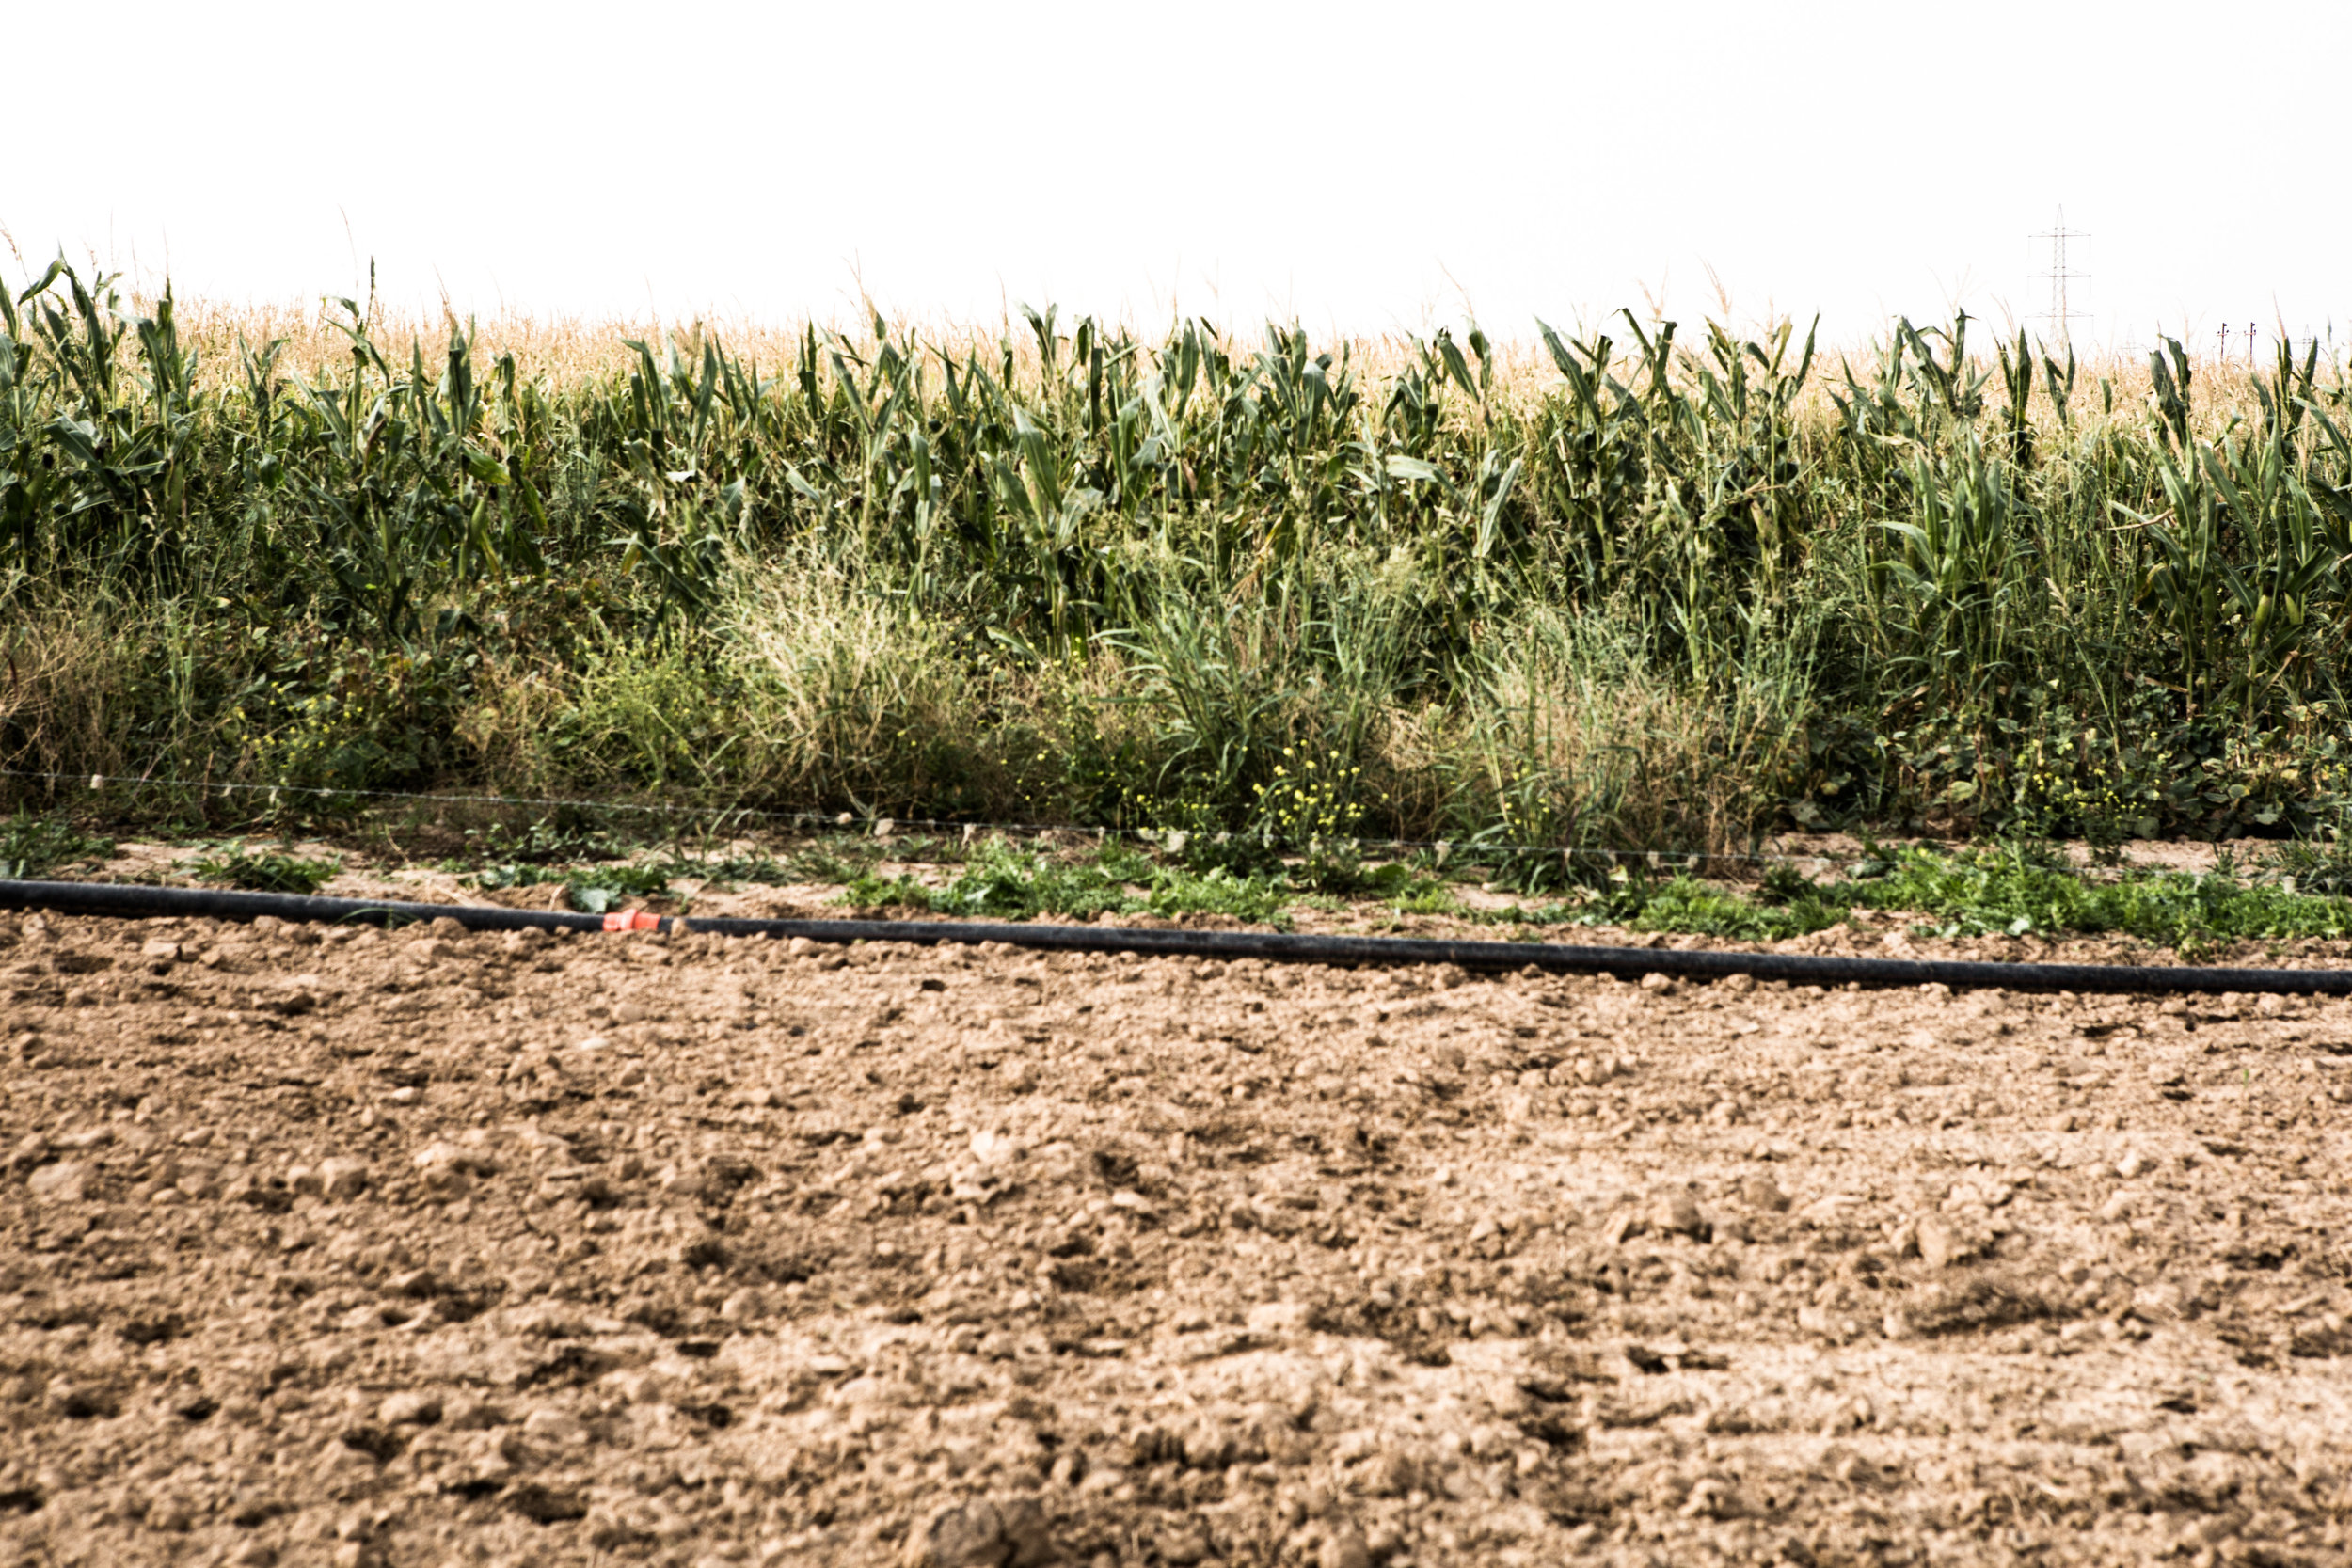 Cornfields in Chakhmakha remain littered with IEDs planted by ISIS.